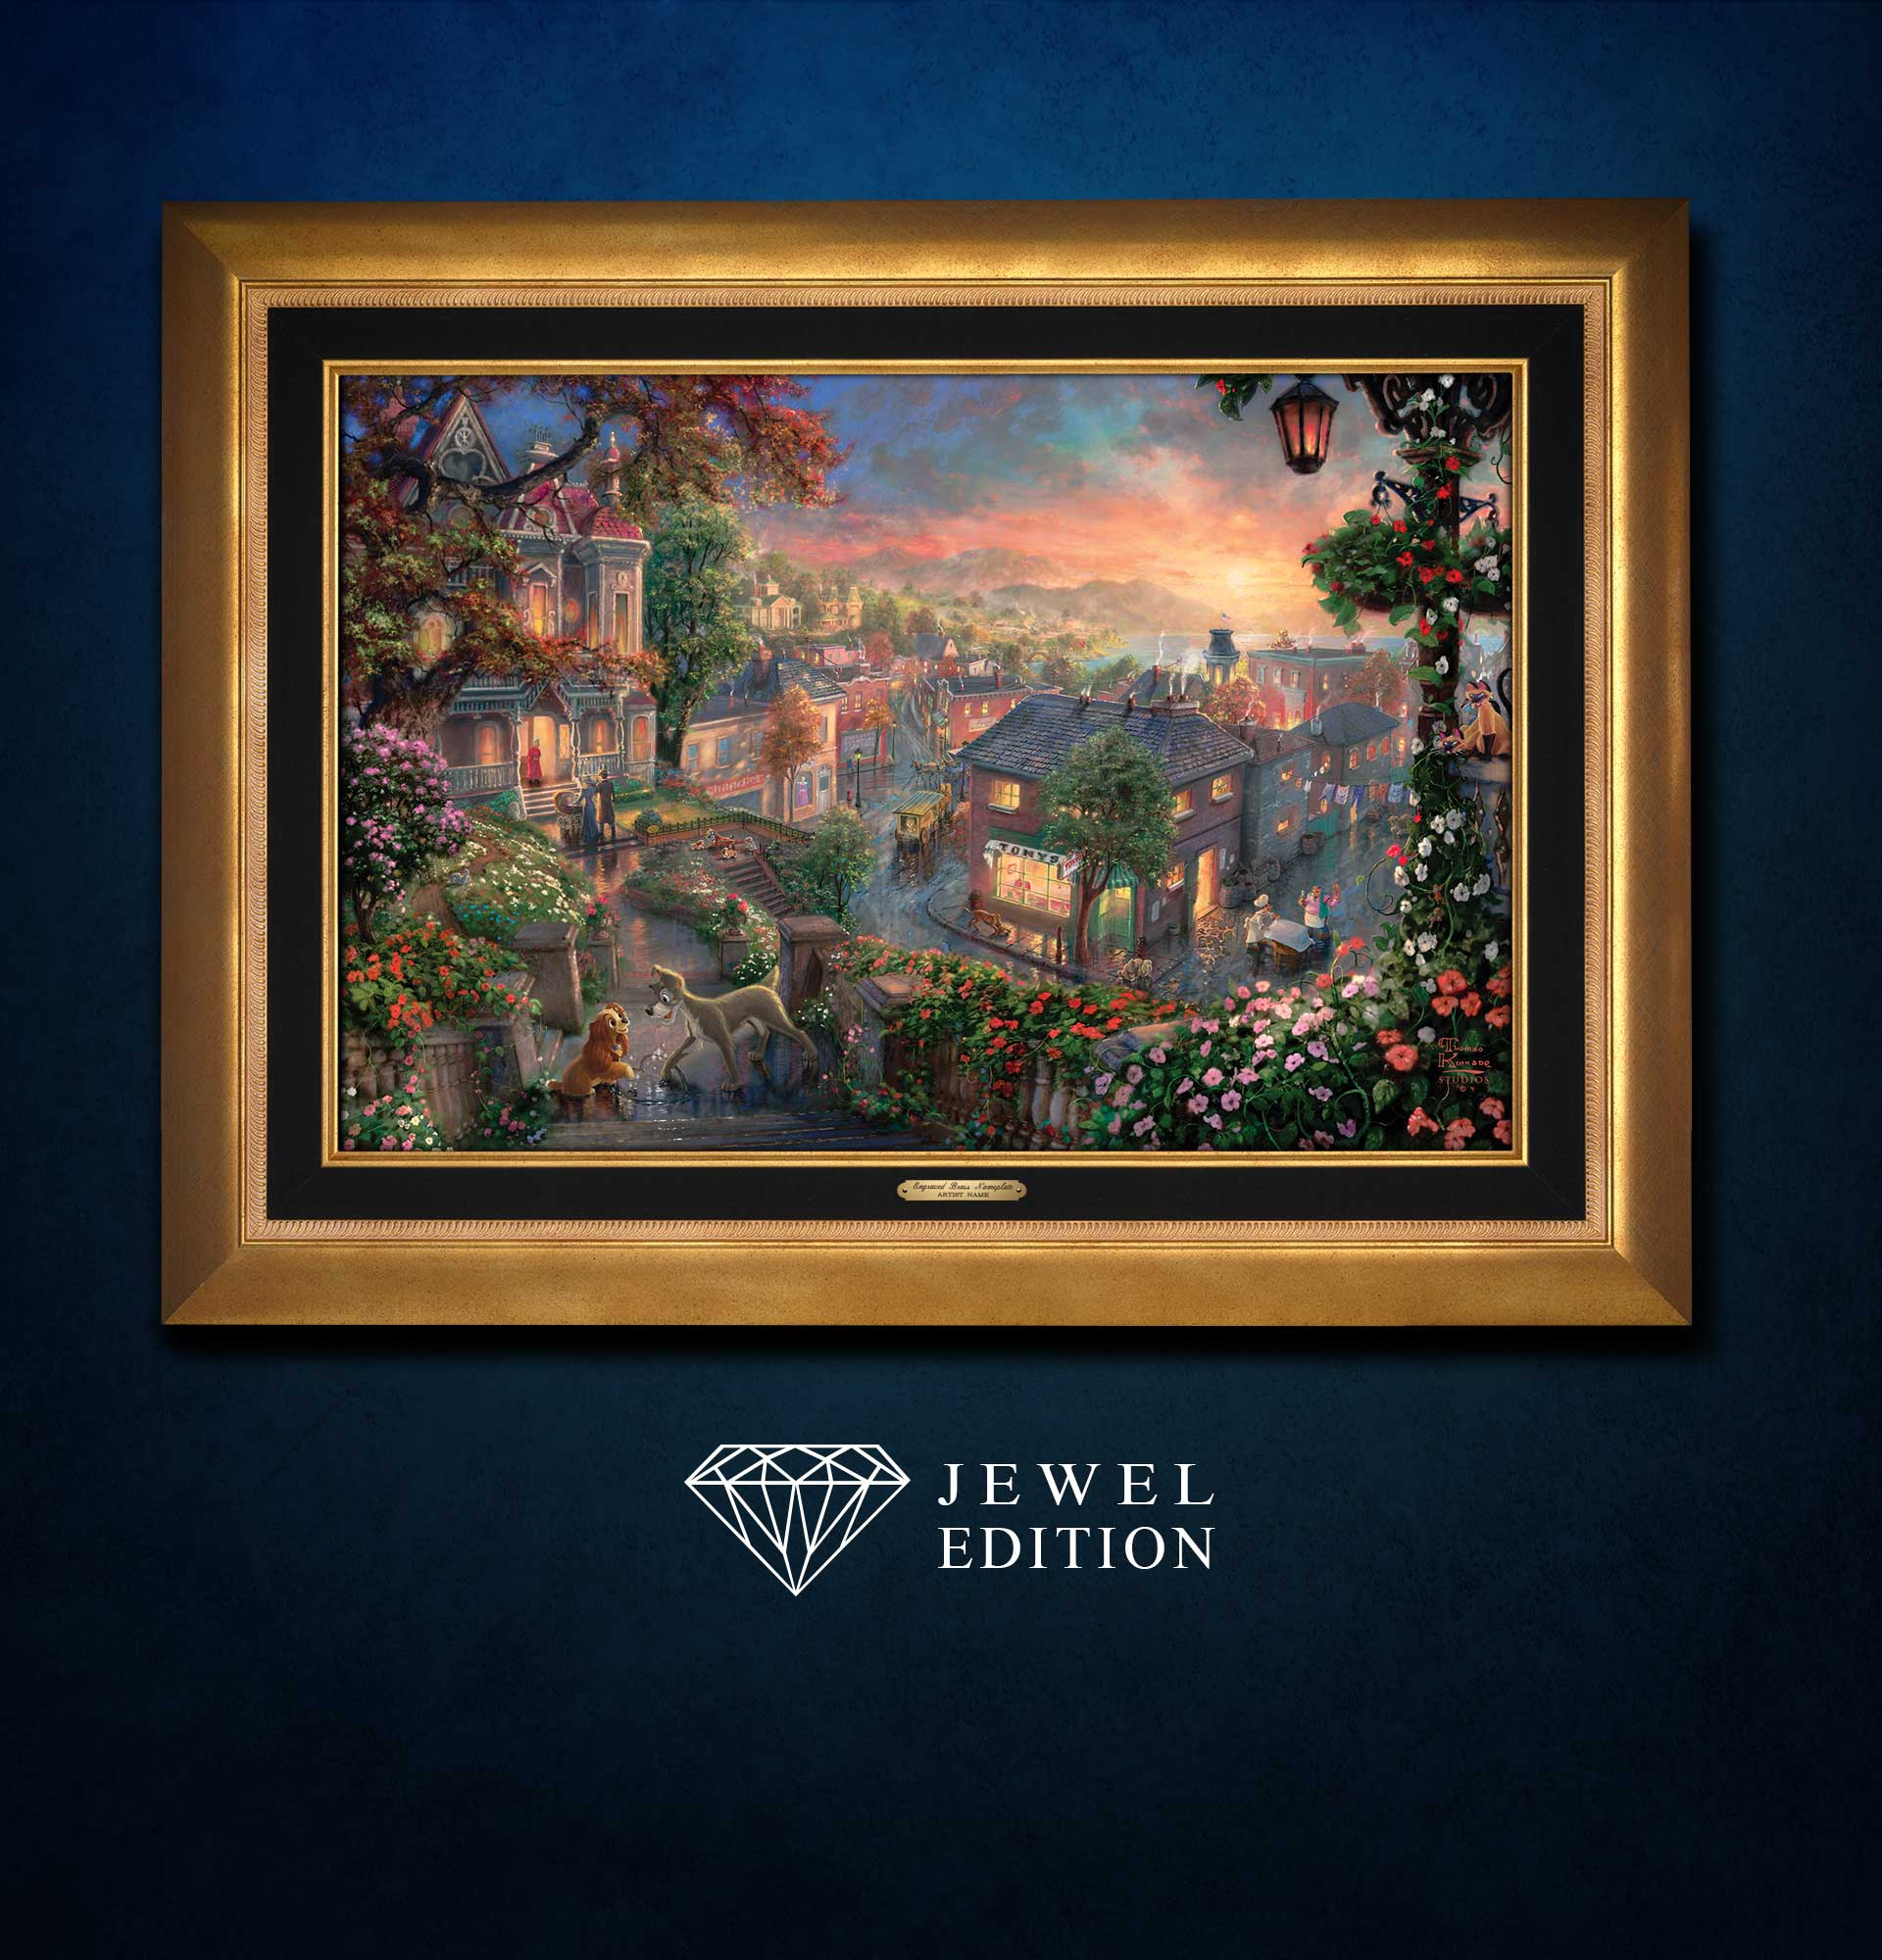 Lady And The Tramp Jewel Edition Art Thomas Kinkade Studios